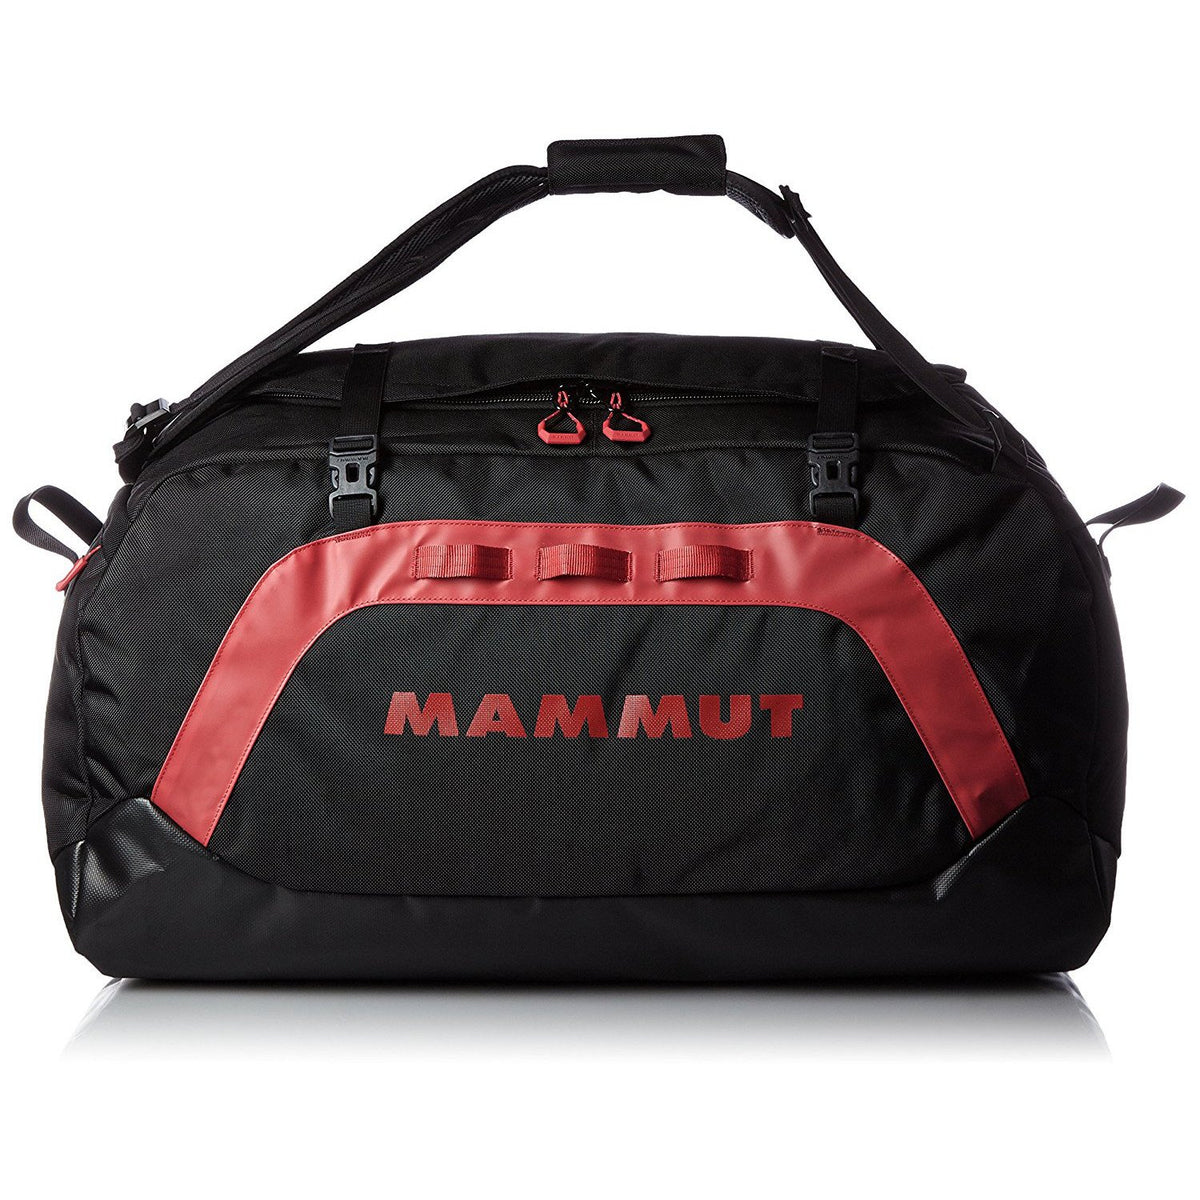 Mammut Cargon Holdall 60L, shown in holdall carry mode, in black/red colours